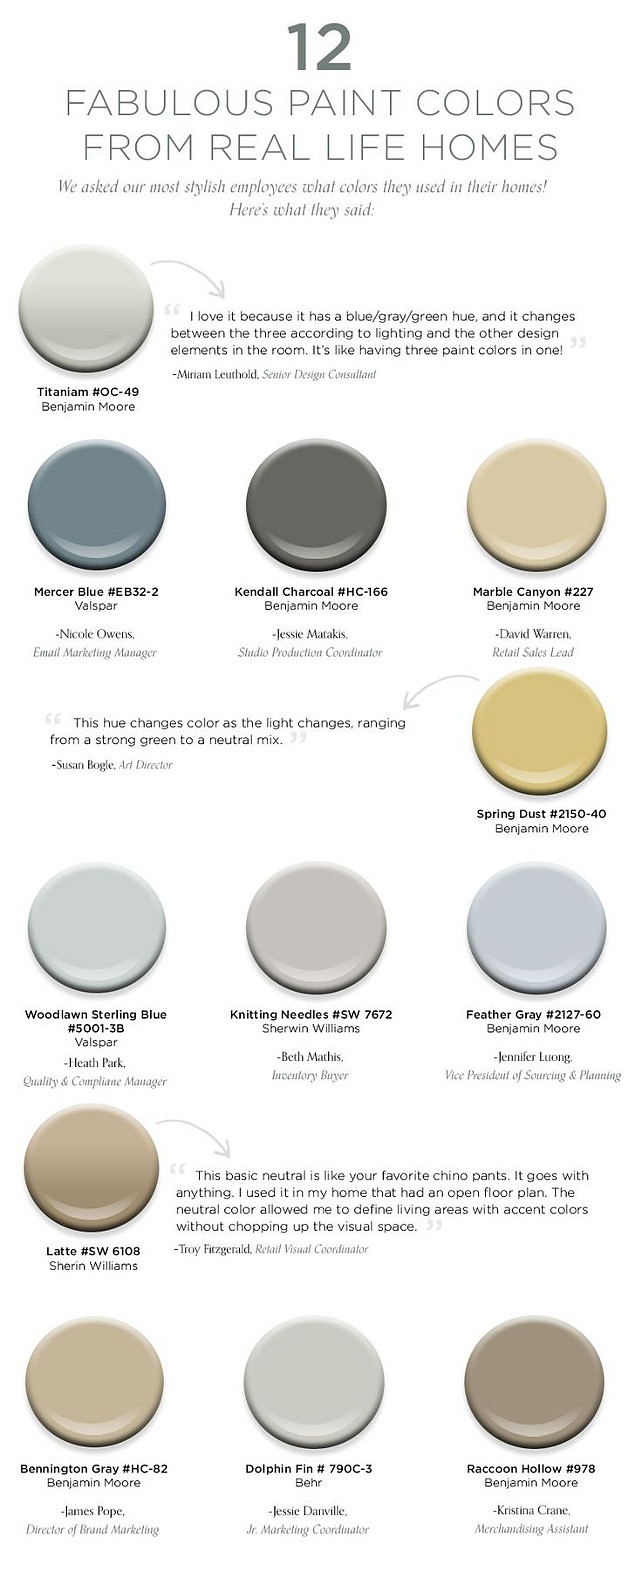 Paint Color Ideas. Fabulous Paint Colors for real homes.